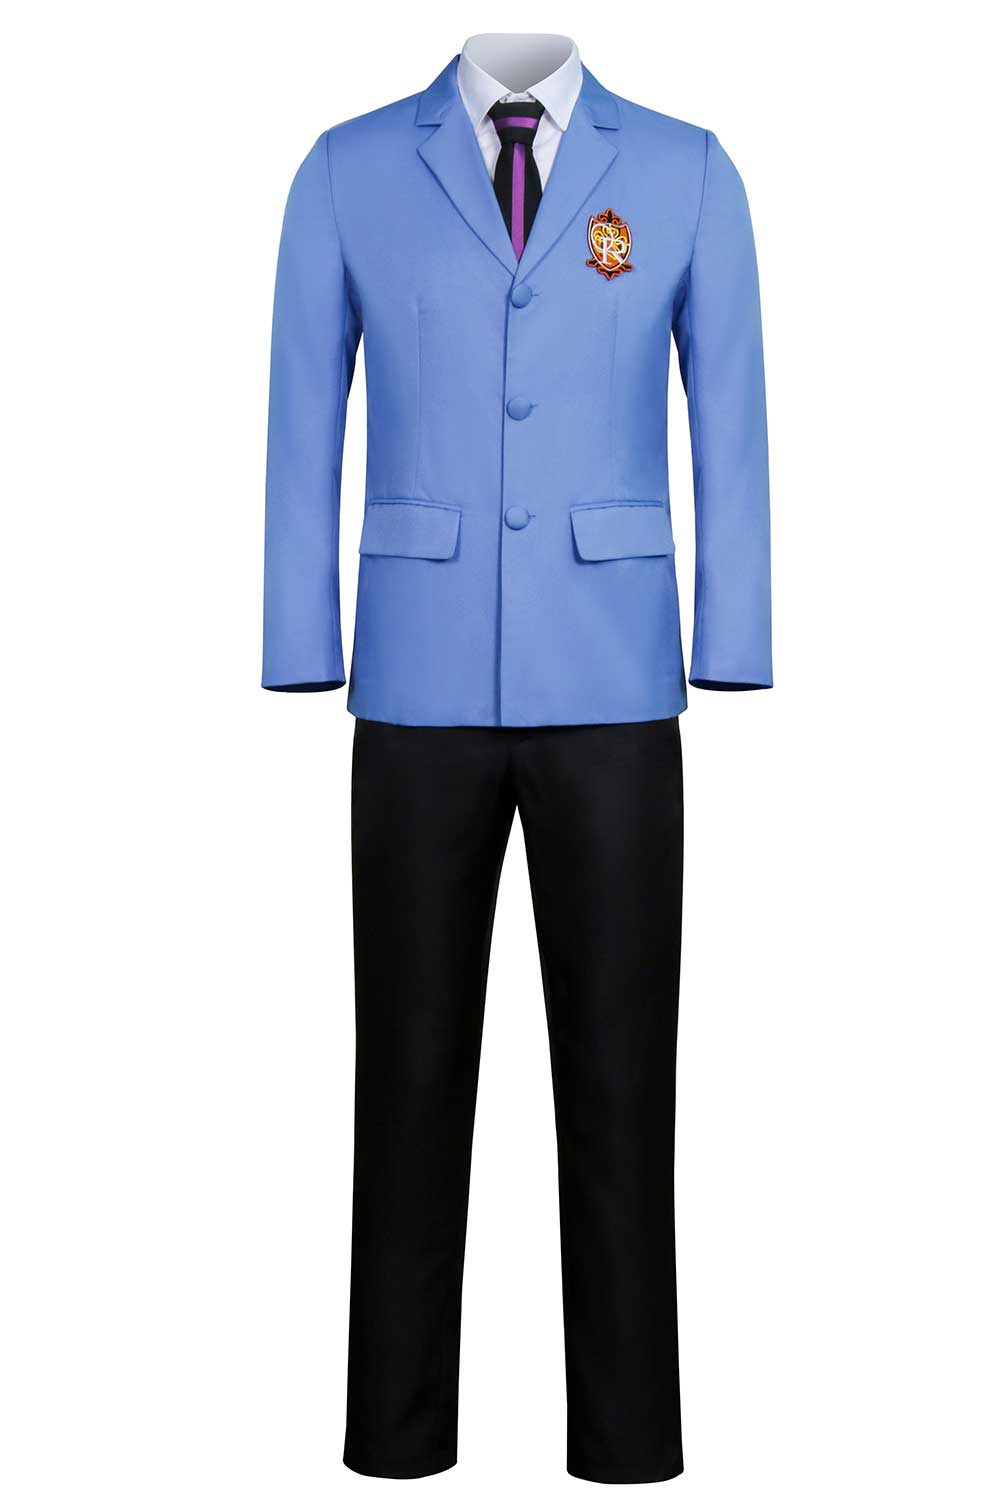 Ouran High School Host Club School Uniform Jacket Tie Pants Cosplay Costume